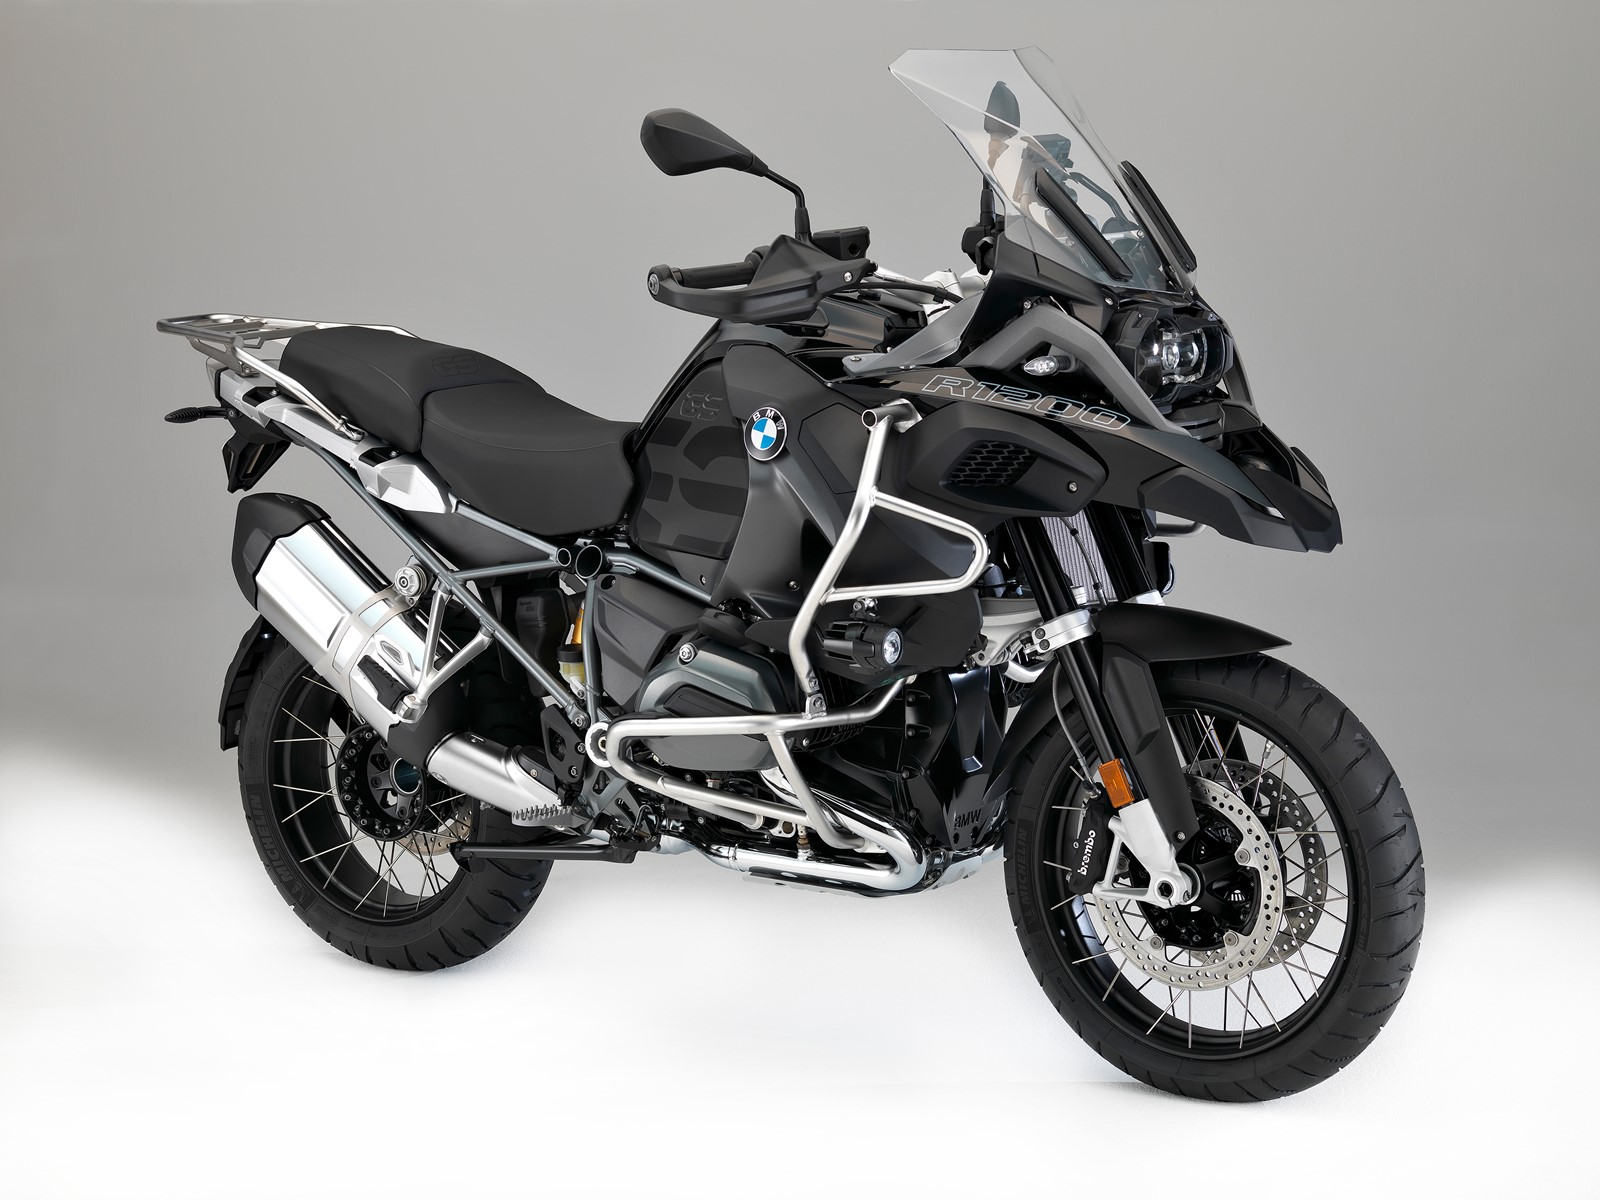 2017 BMW R1200 GS right side